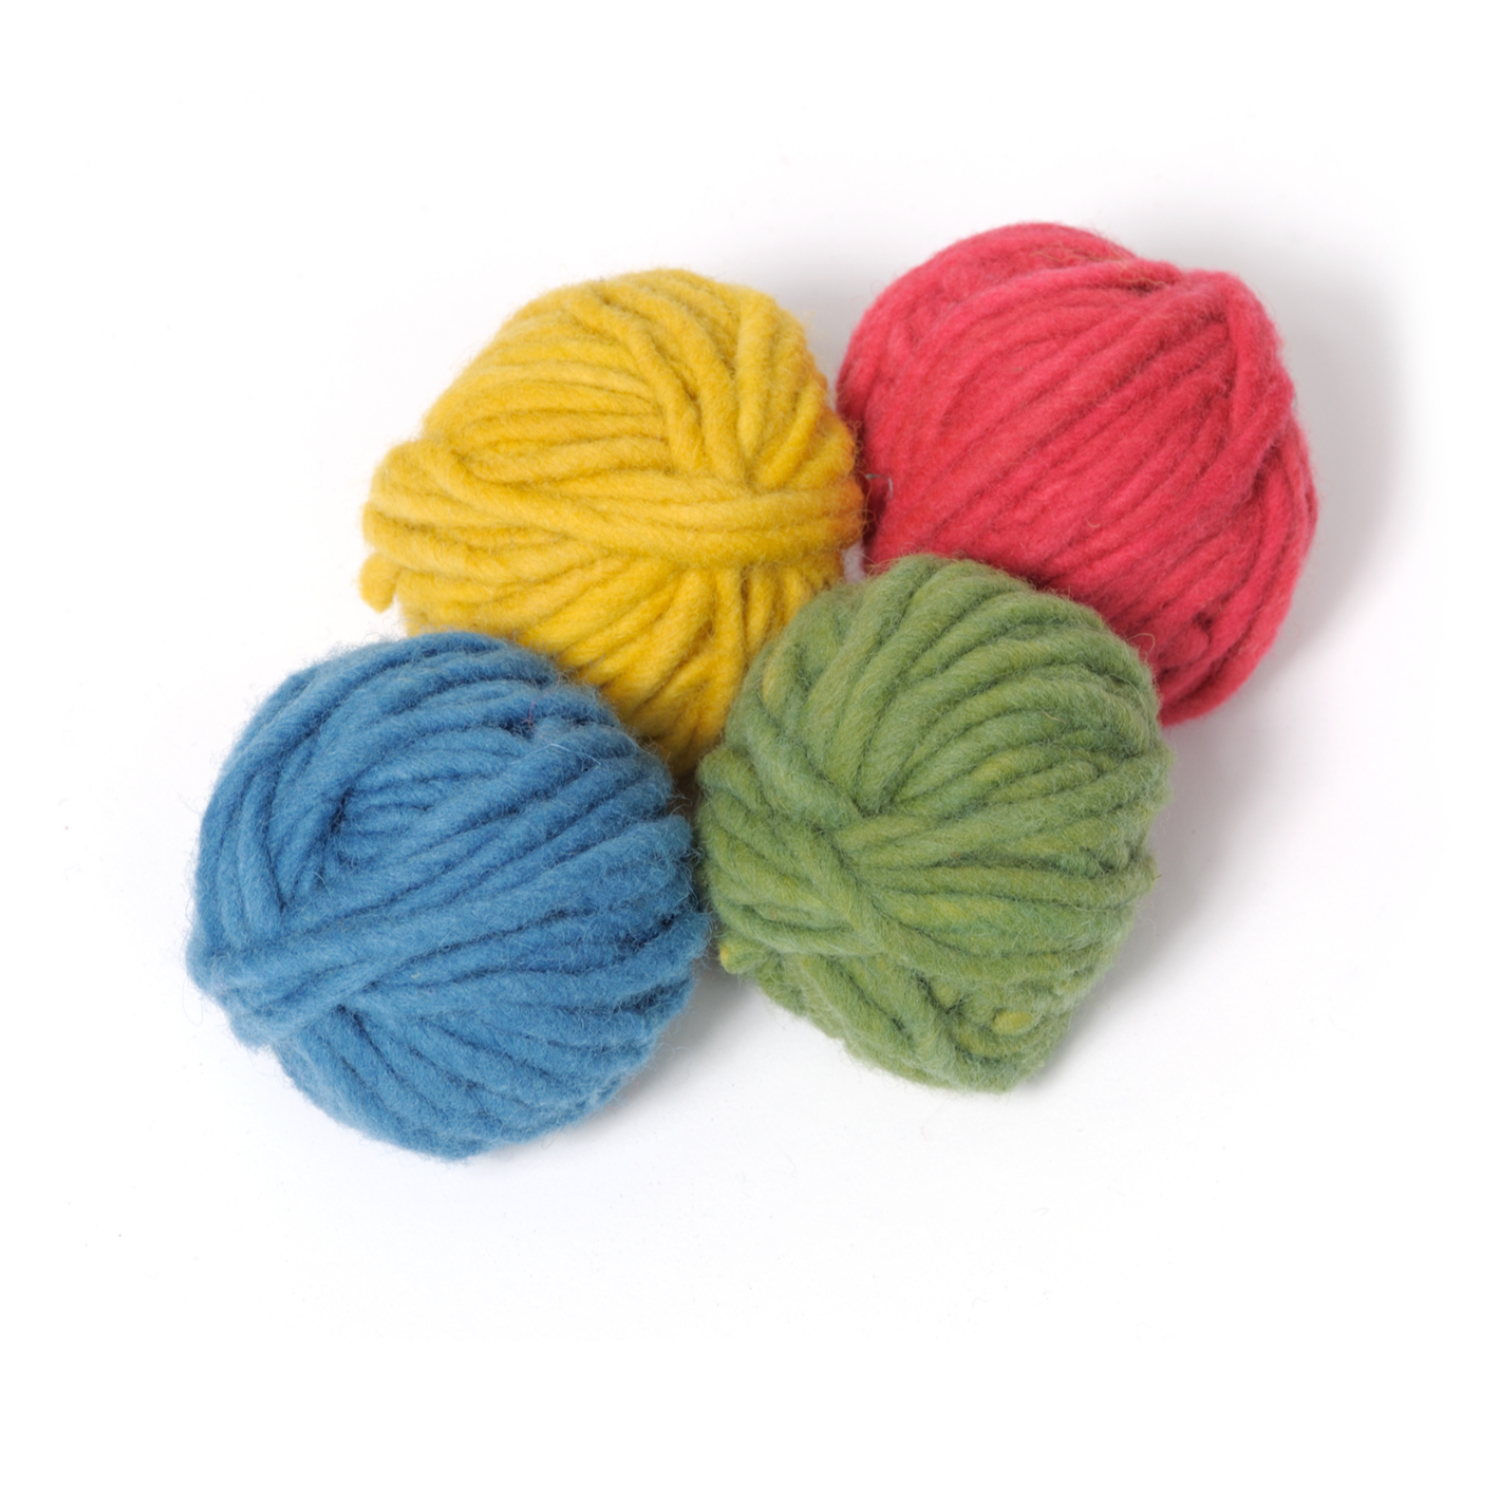 Filges Plant-dyed Organic Wool in Bright Colours 4 x 25 g.